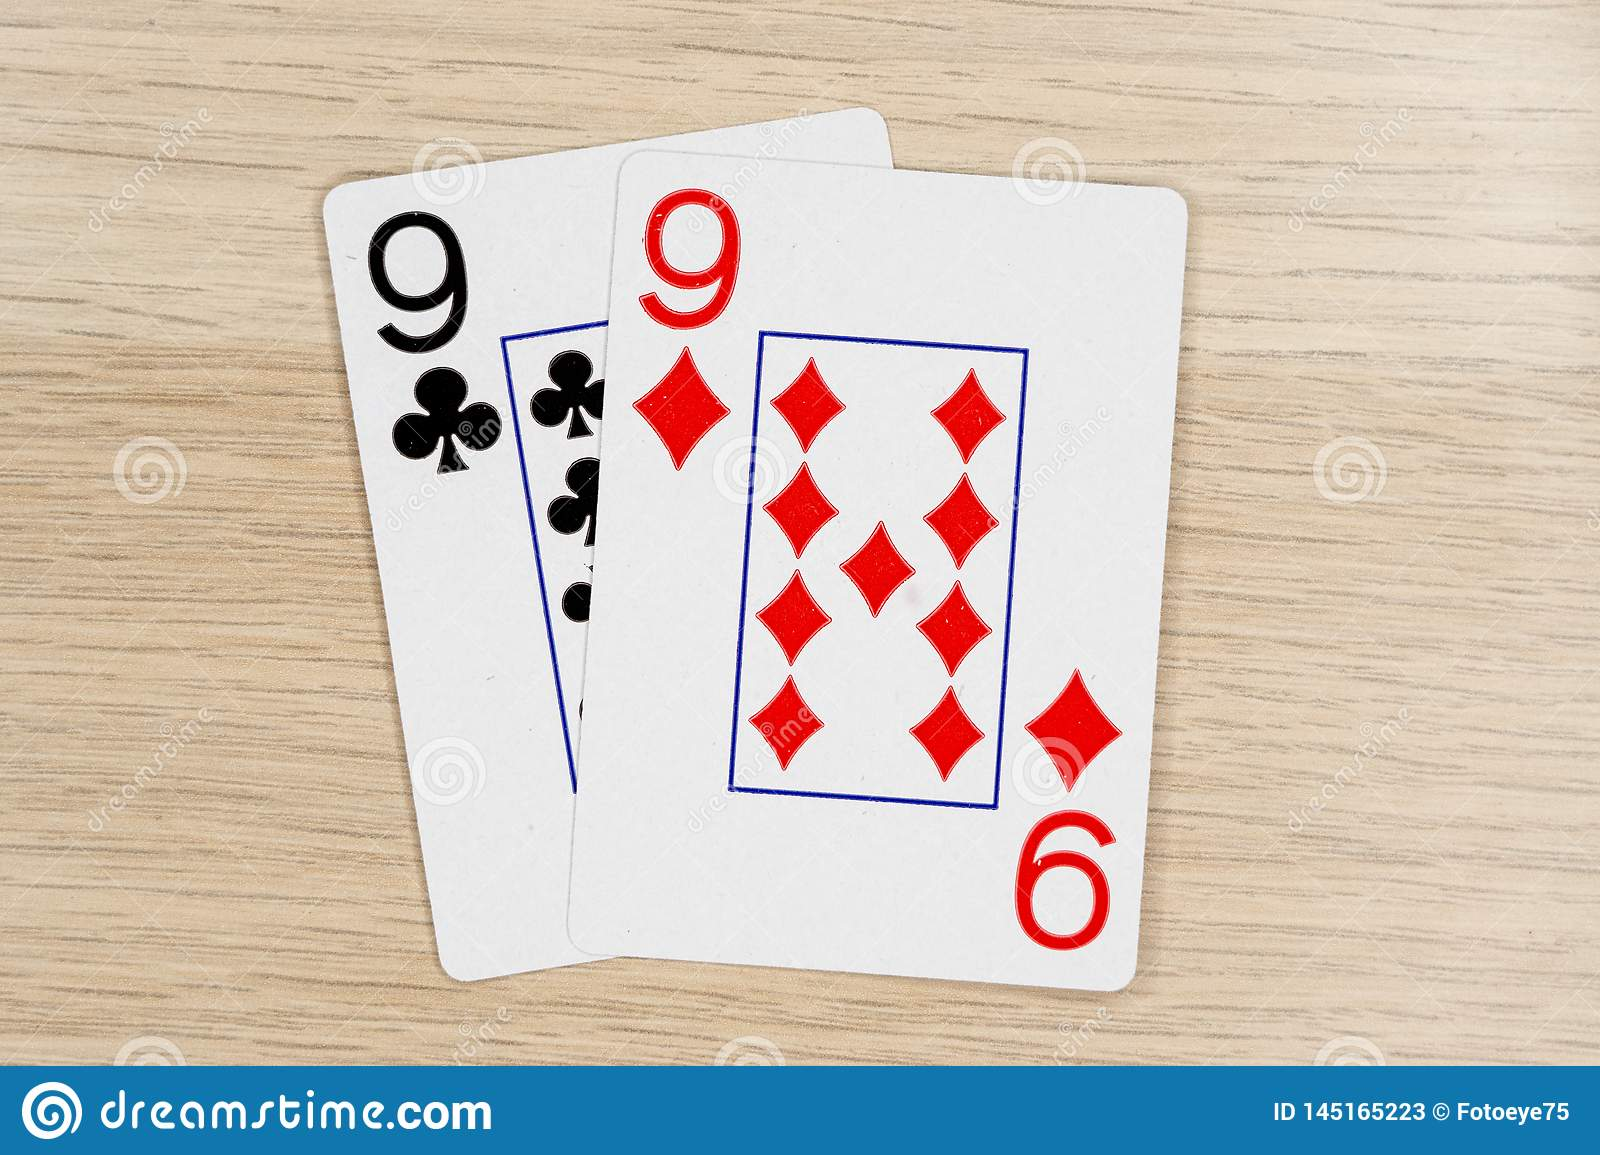 Pair Of Nines 9 Casino Playing Poker Cards Stock Image Image Of Winner Gamble 145165223